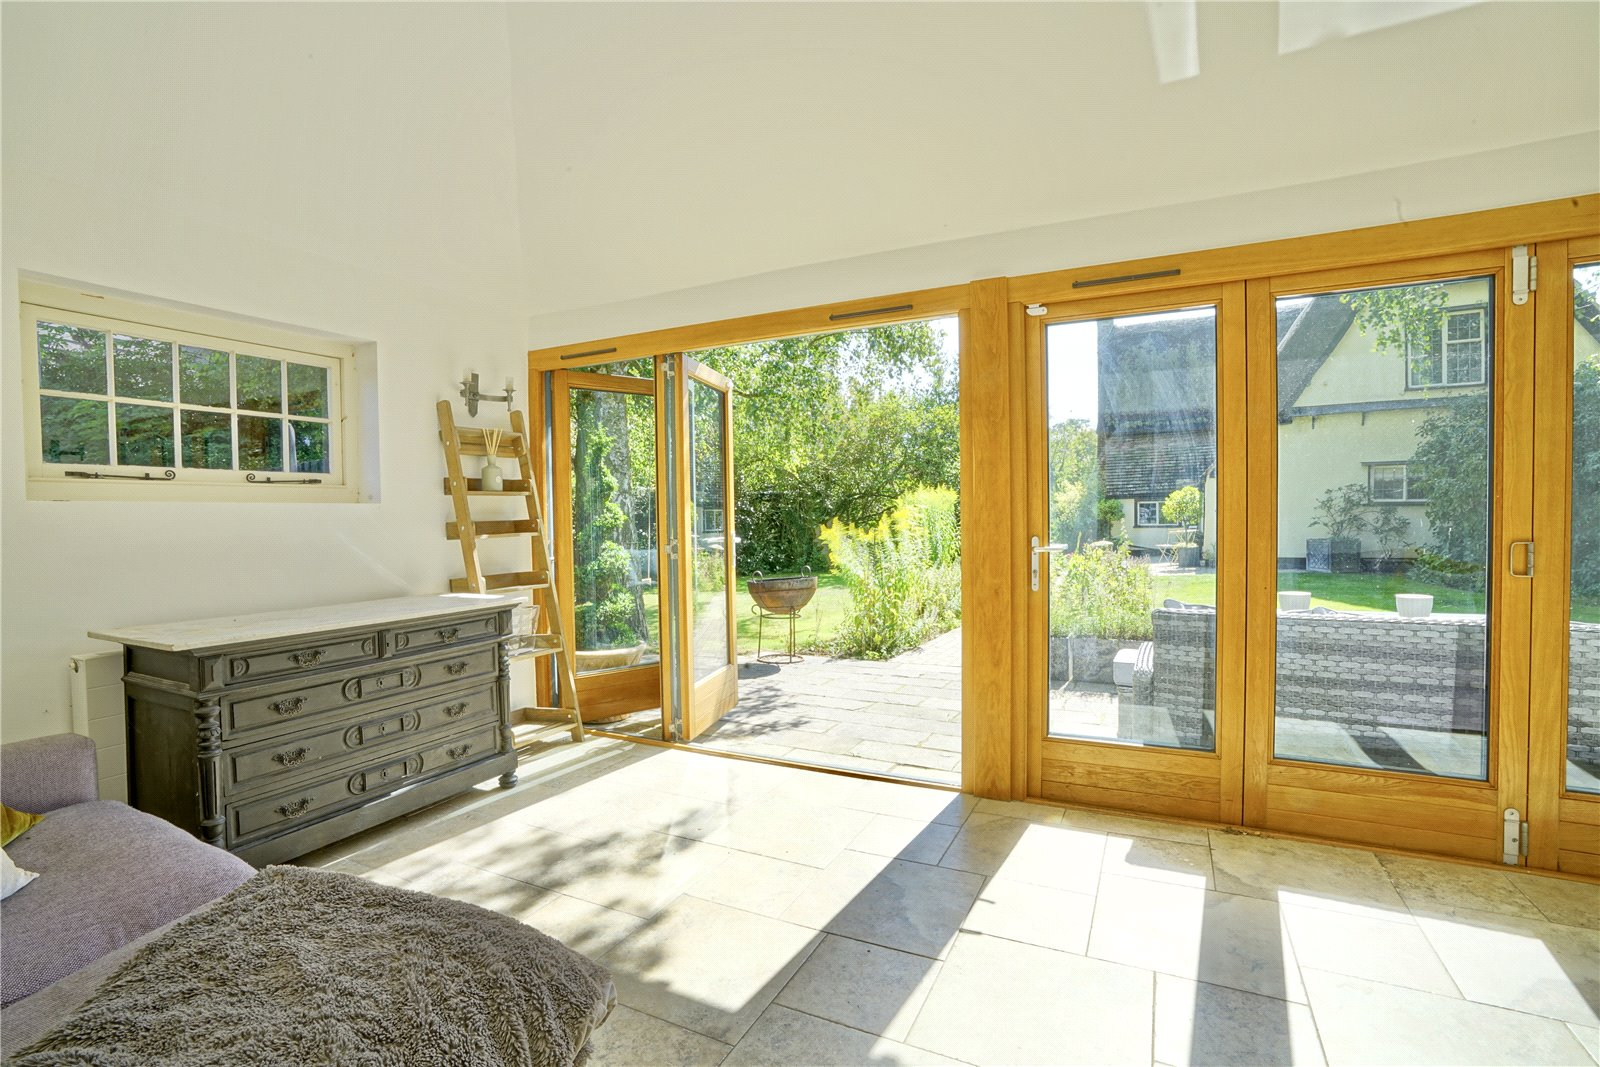 3 bed house for sale in The Highway, Great Staughton  - Property Image 12